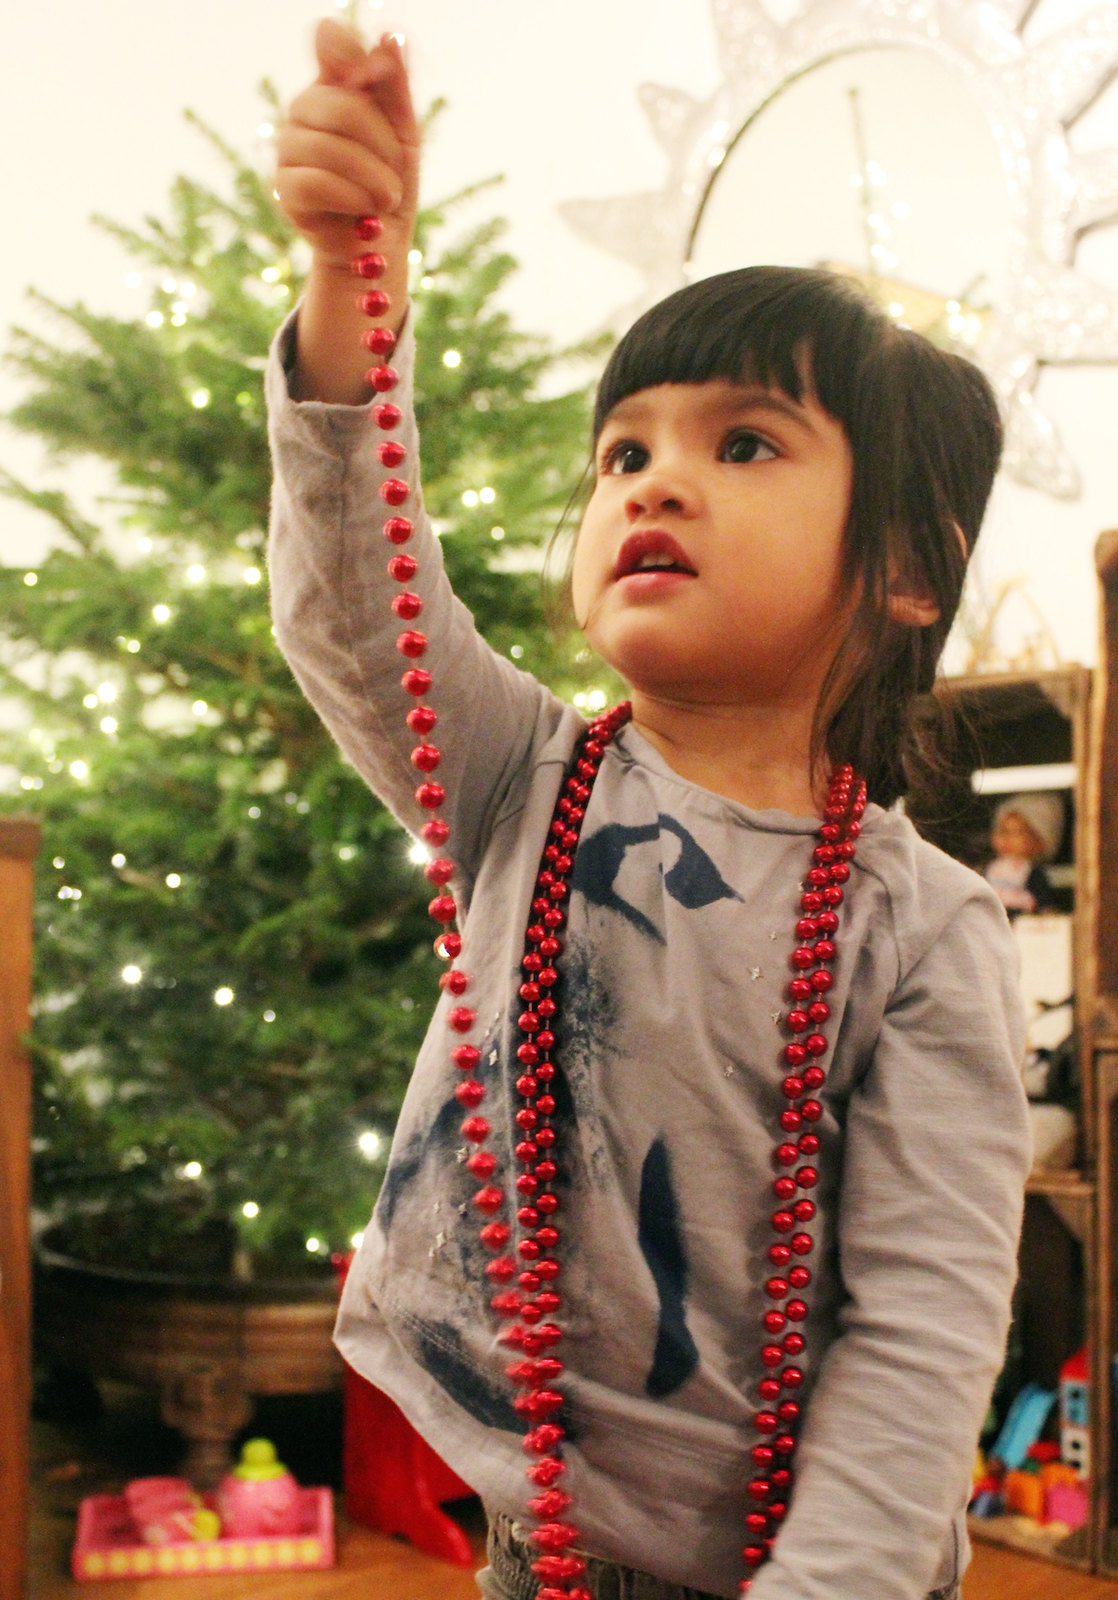 Tala and the Christmas decoration